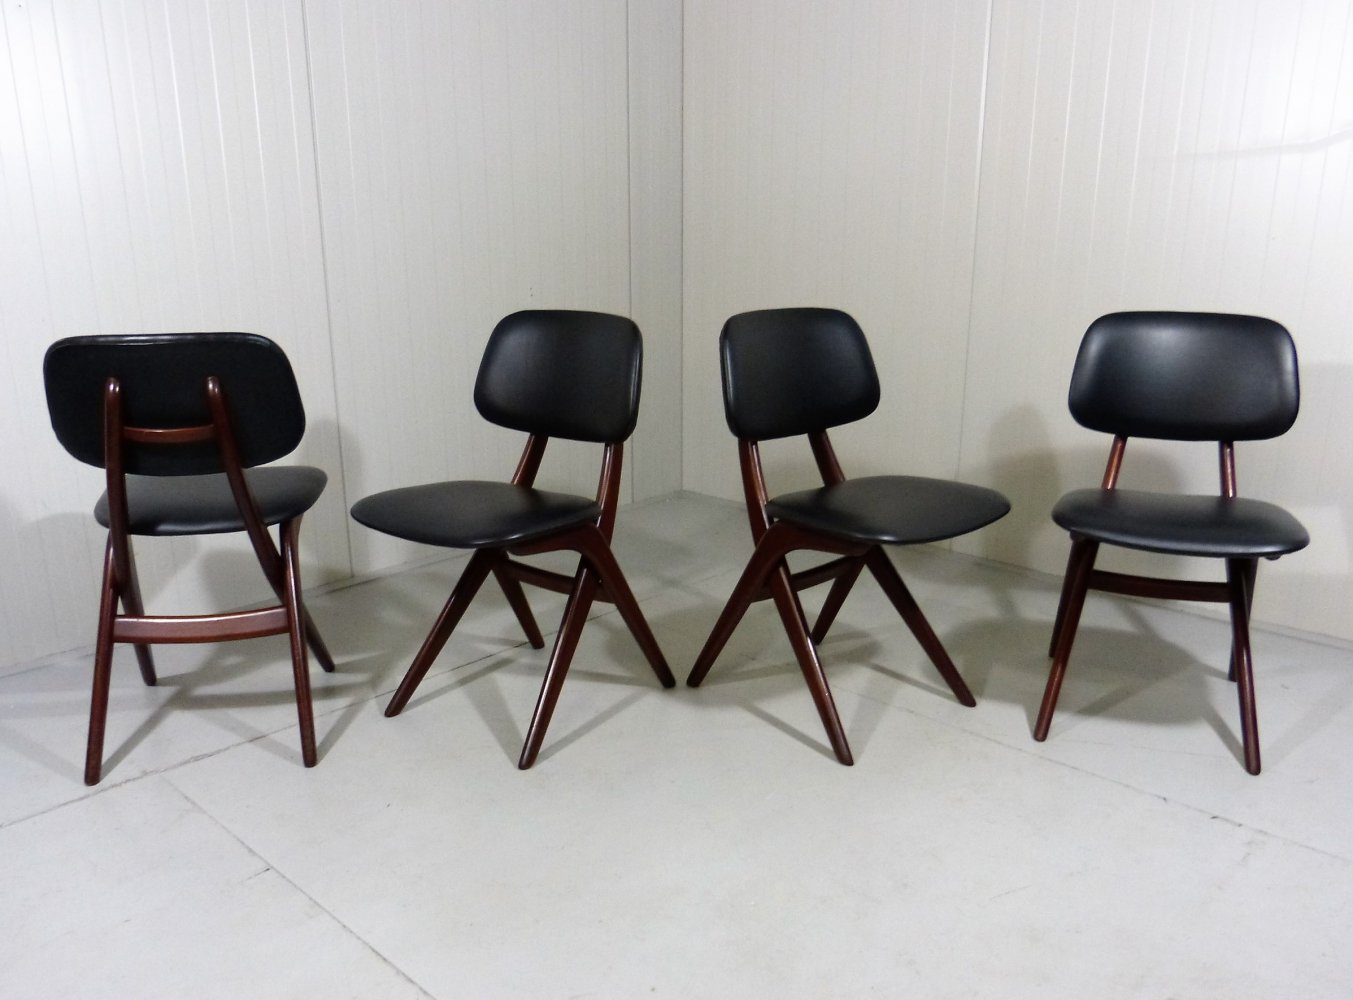 Set of 4 pelican chairs by Louis van Teeffelen, 1960